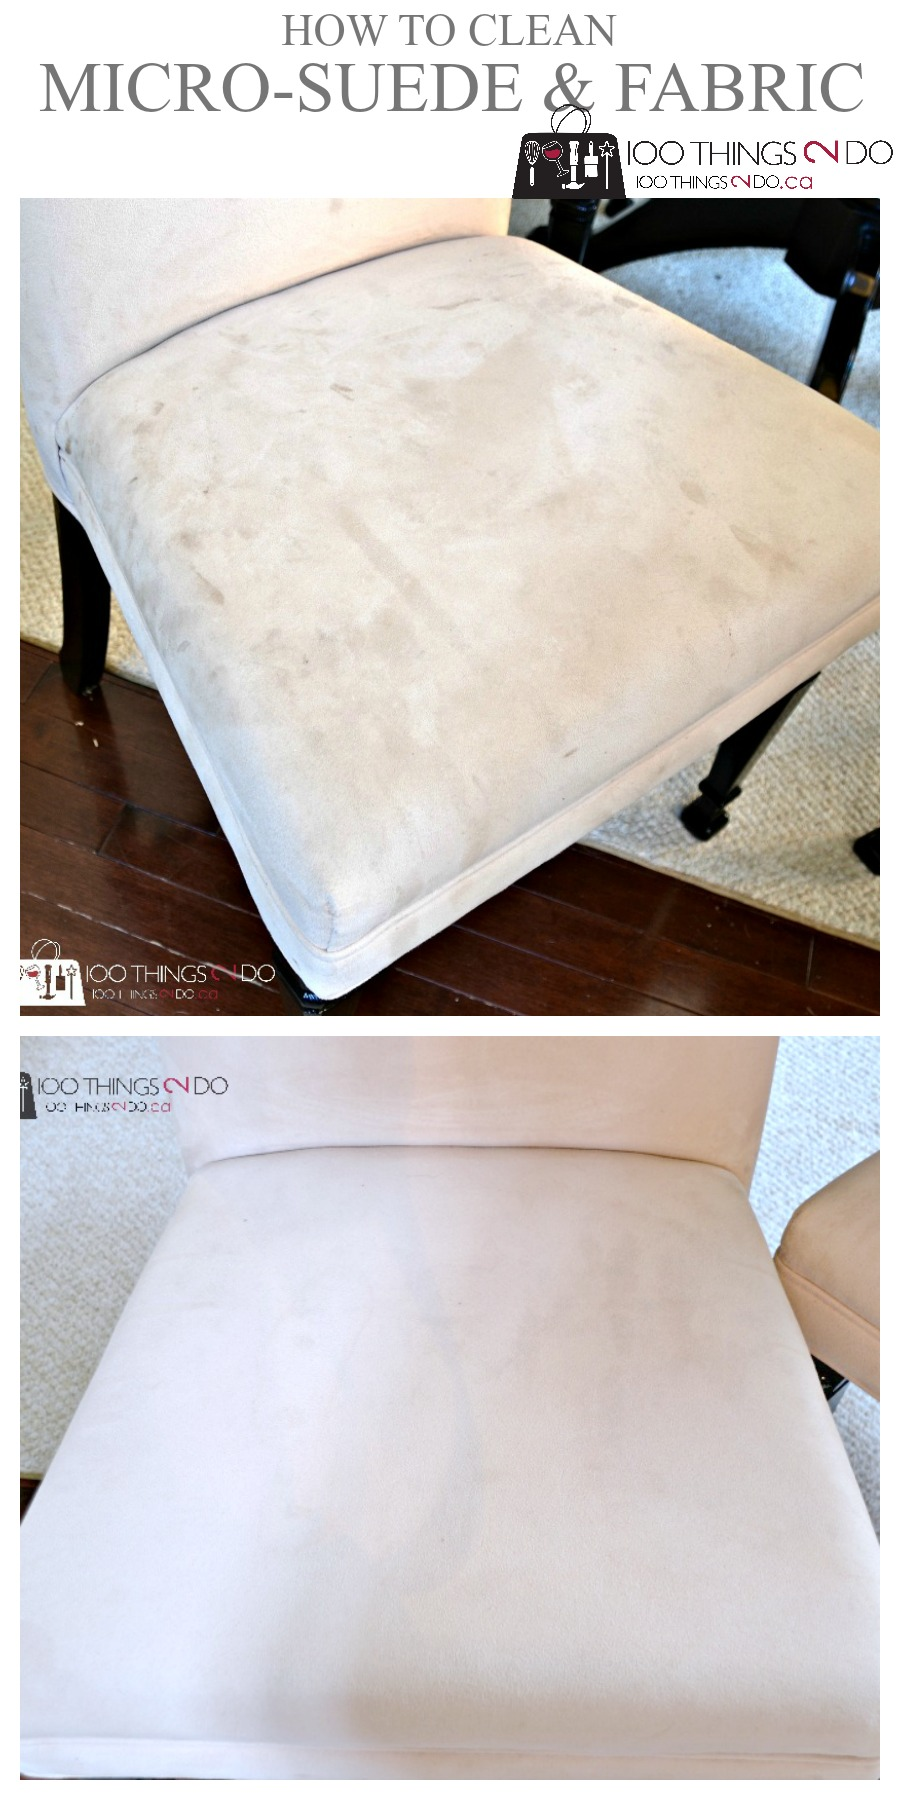 Cleaning fabric & microsuede - P